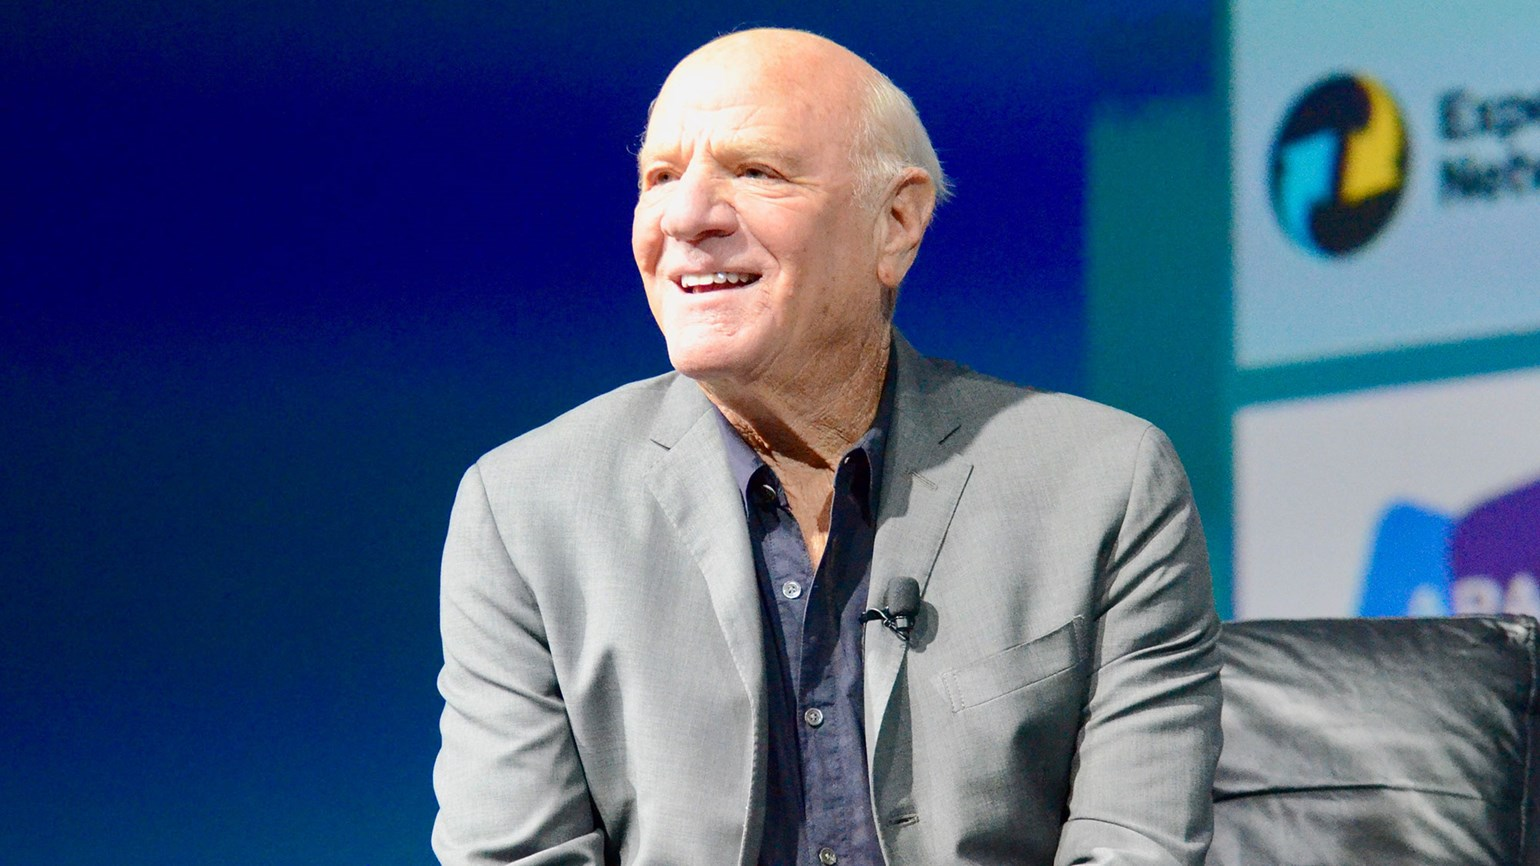 Barry Diller's vision for Expedia resonates with Wall Street